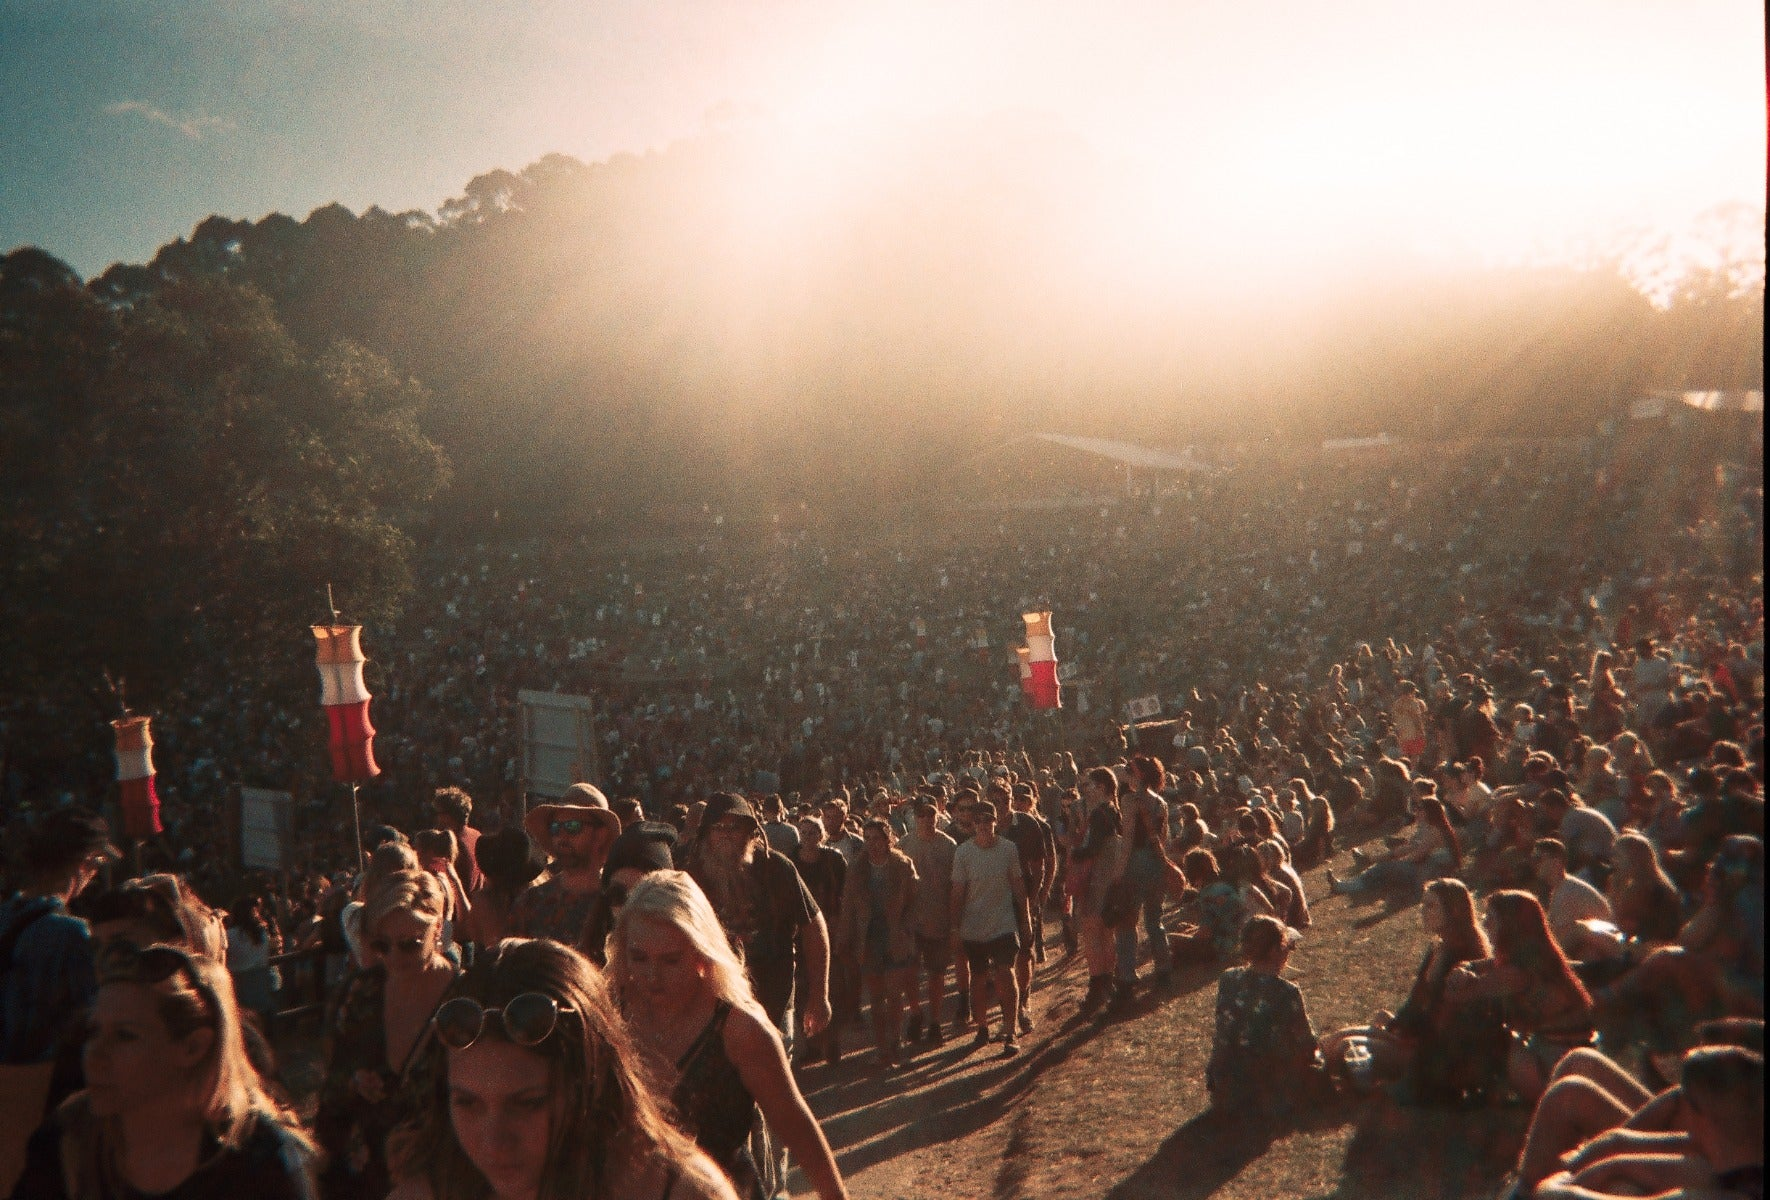 Our Top 5 Sustainable Festival Tips for Splendour